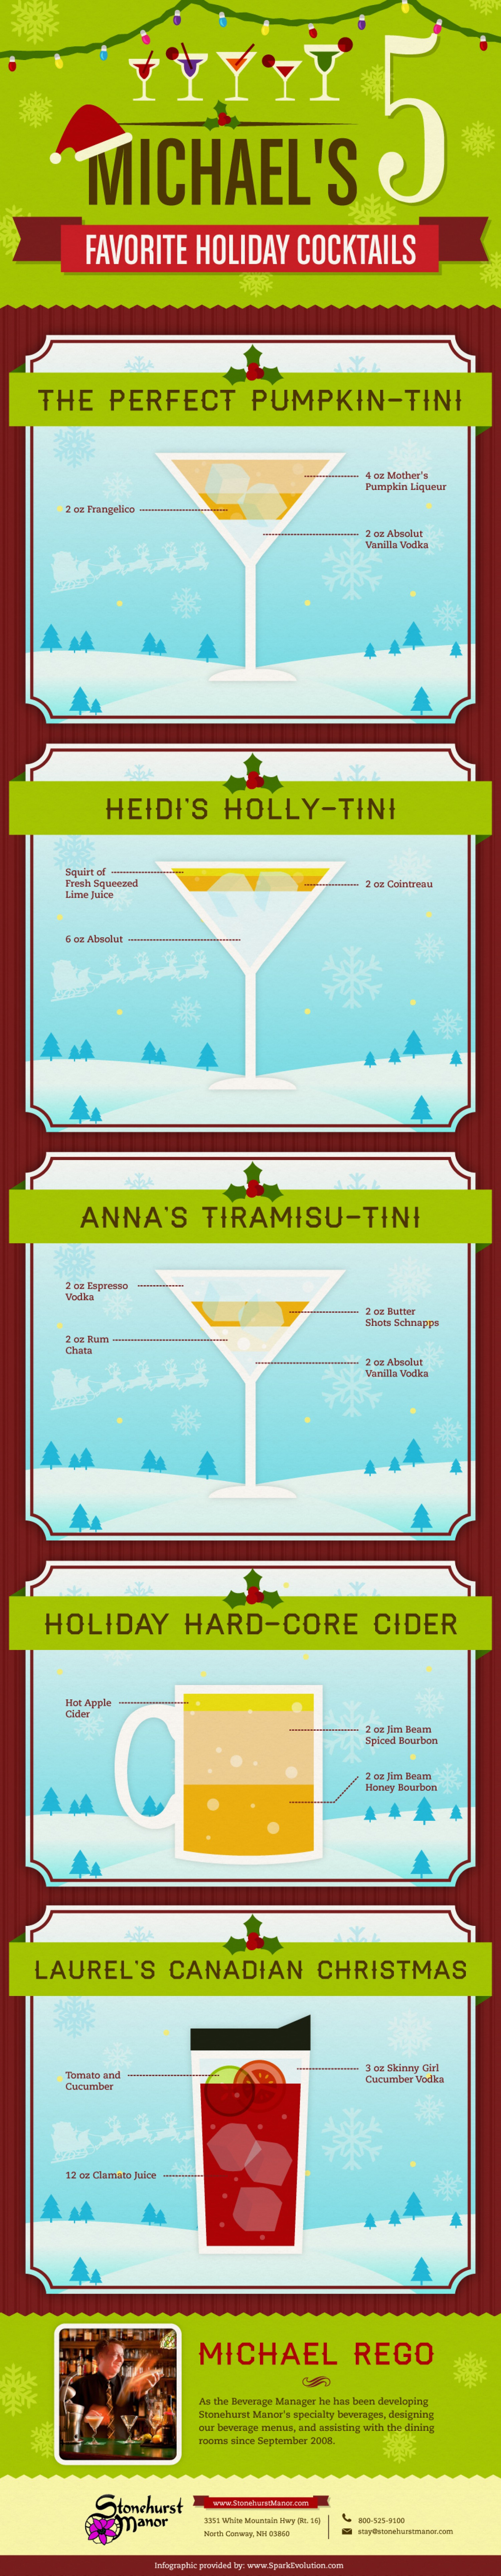 Michaels Top 5 Holiday Cocktails